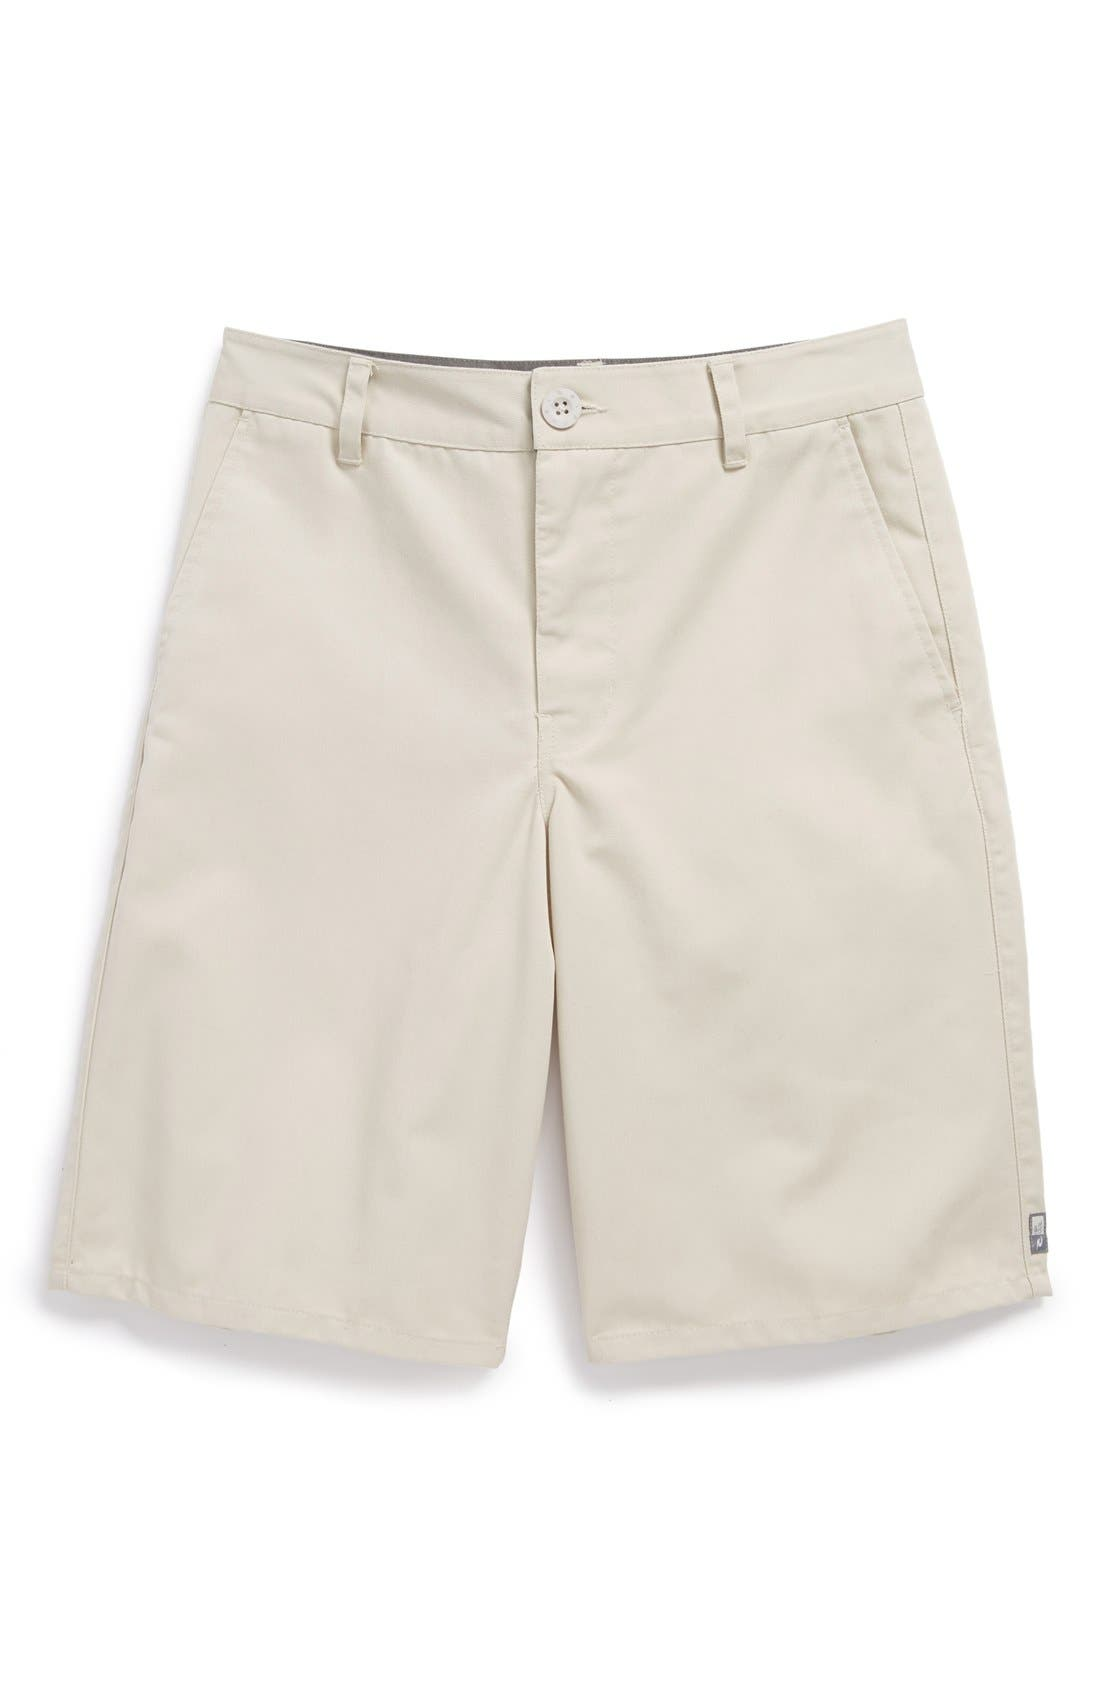 Alternate Image 1 Selected - Rip Curl 'Constant' Walking Shorts (Big Boys)